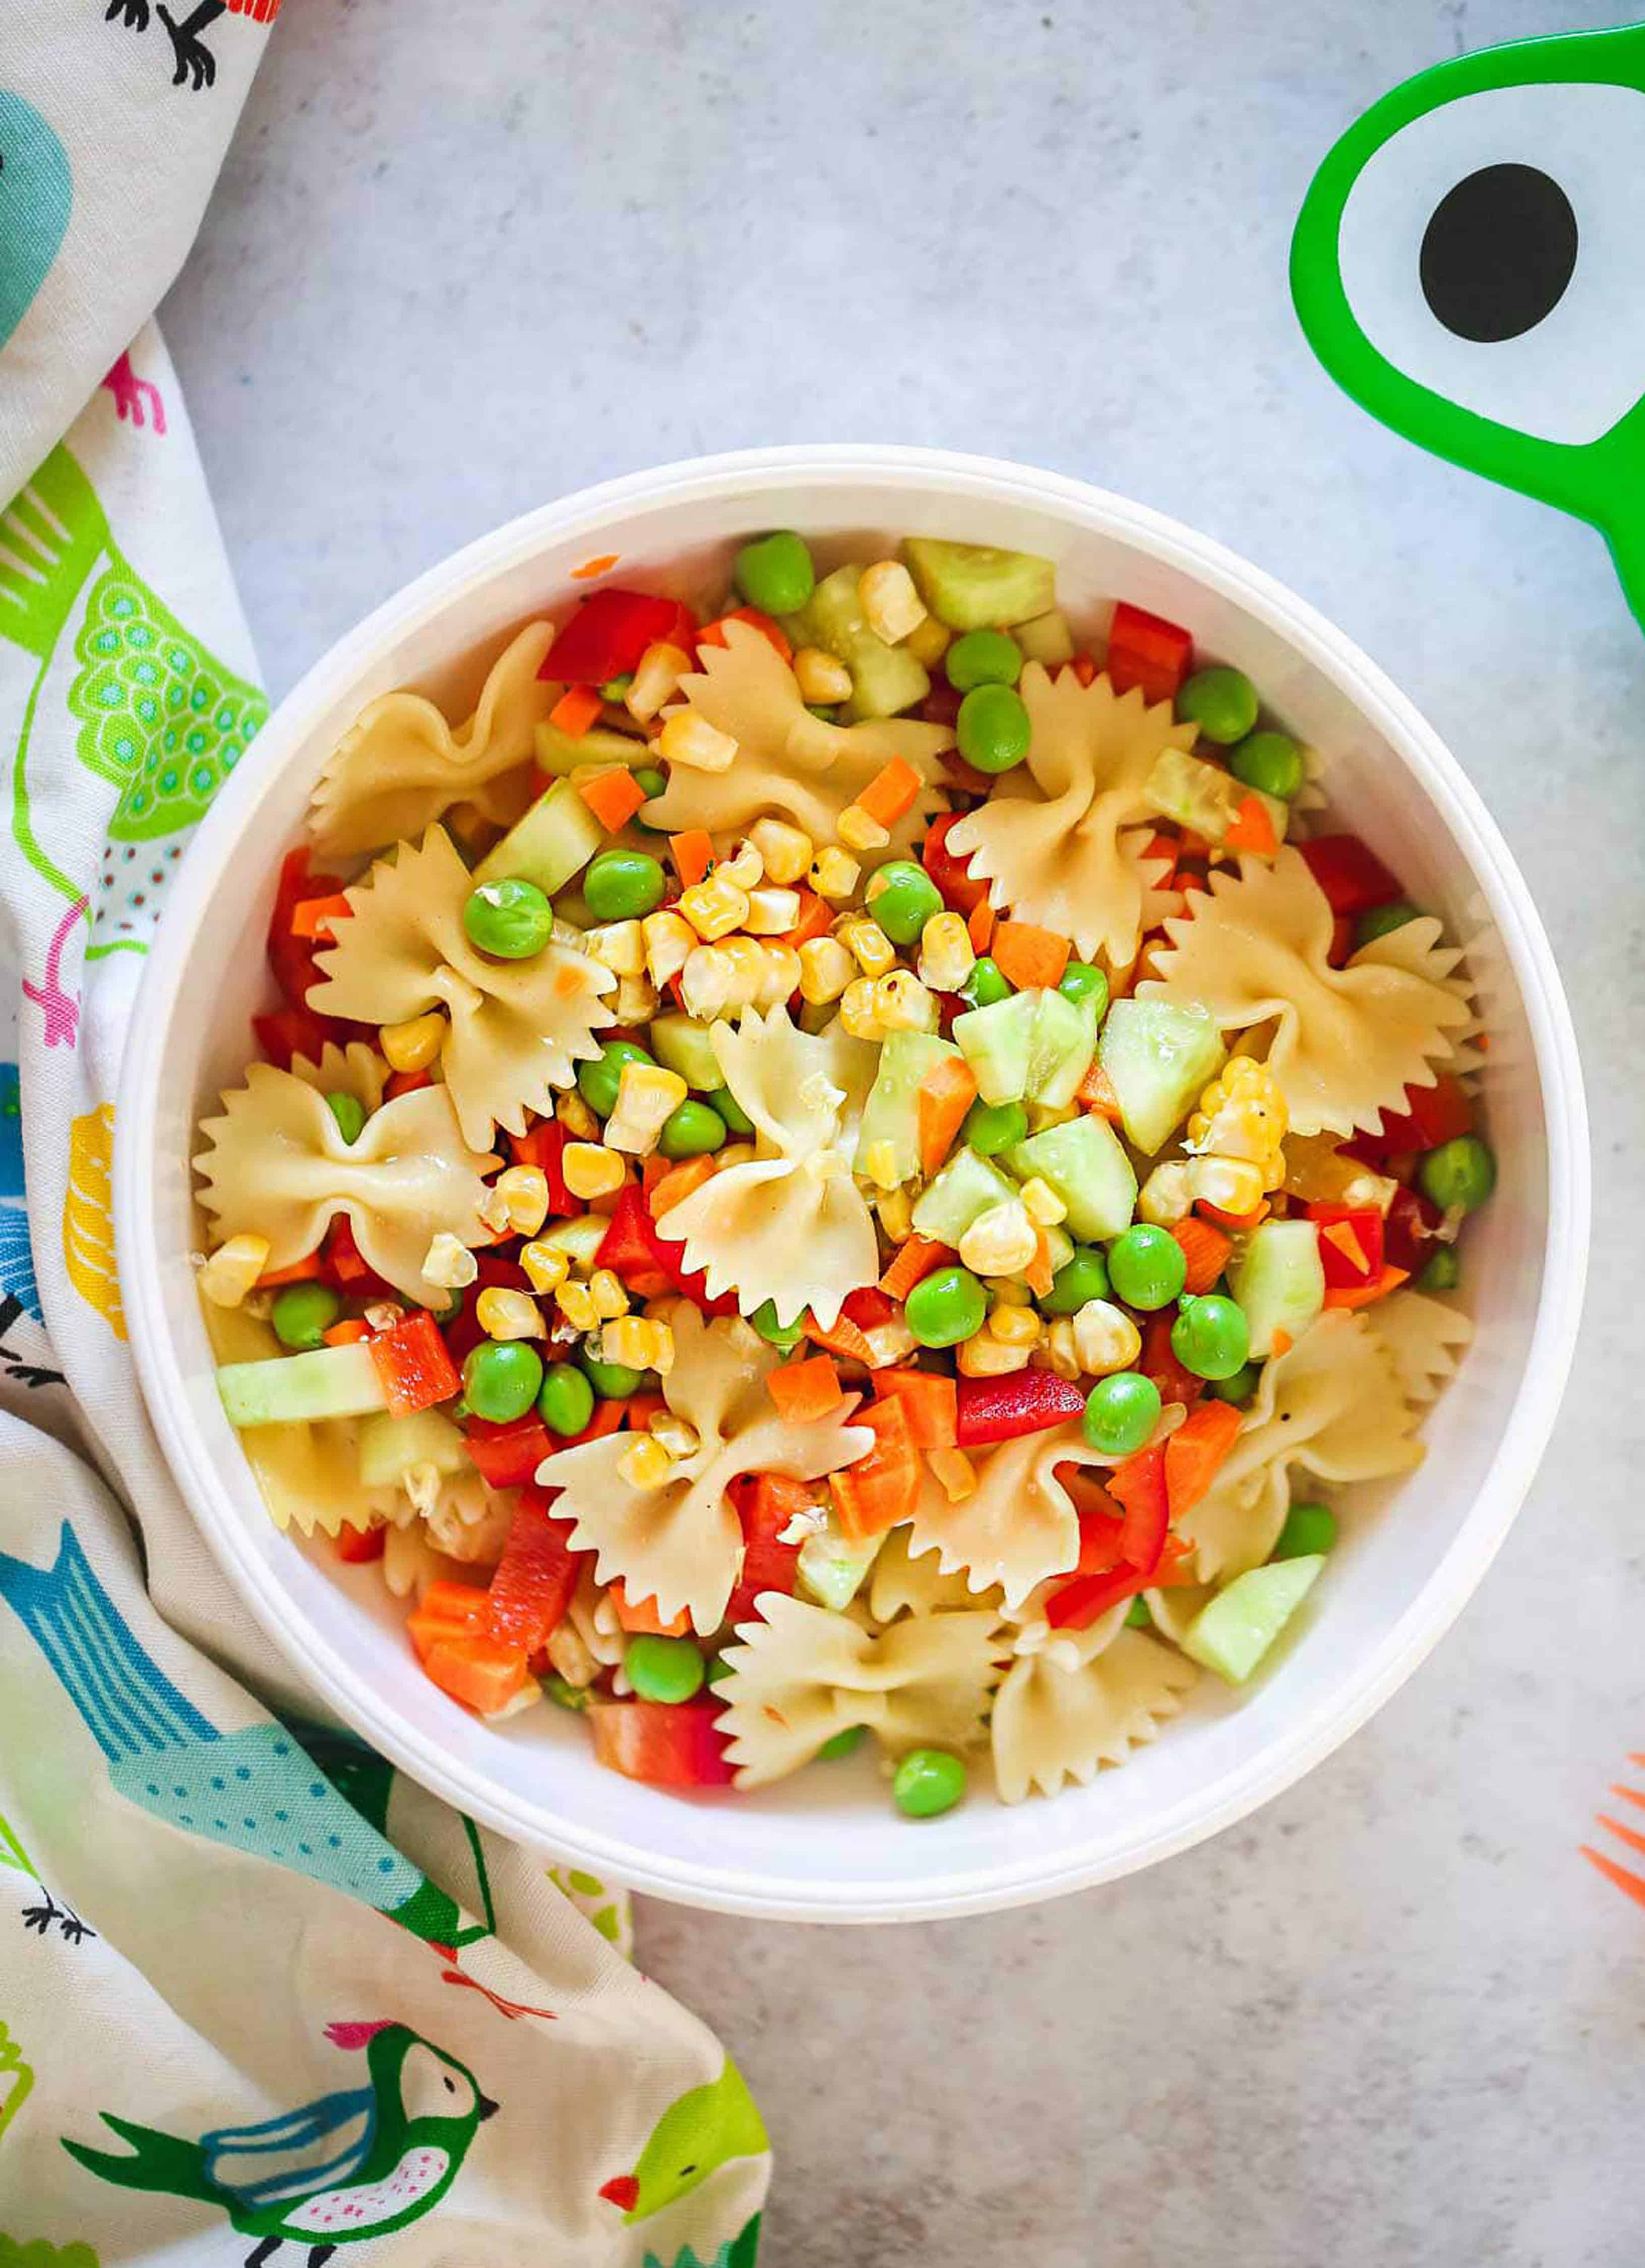 Yummy and healthy lunch box ideas for school. Recipe by Little Sunny Kitchen.